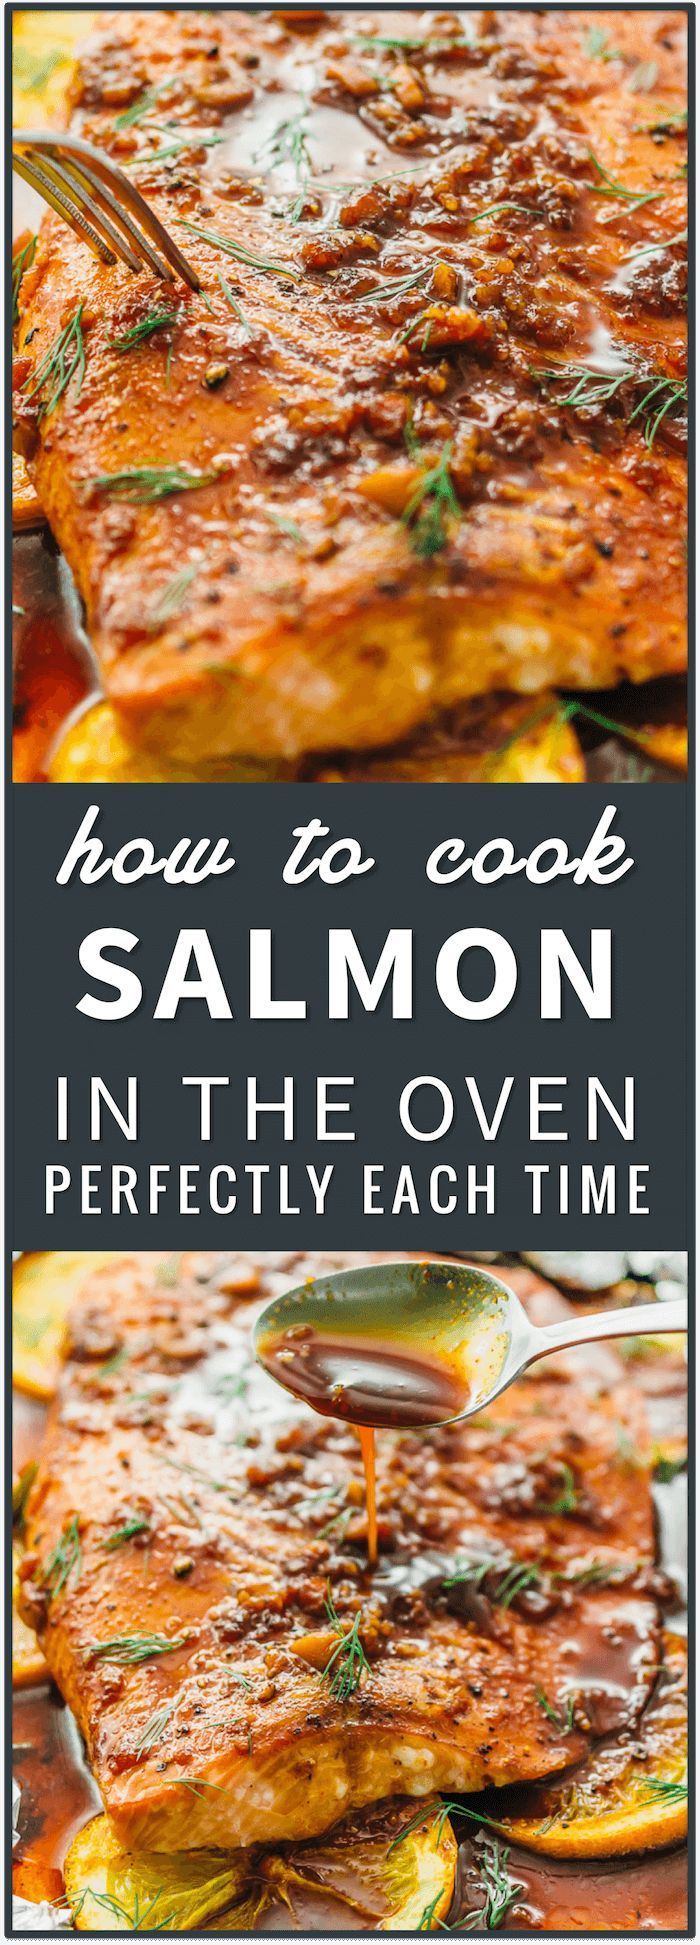 Have a look at how to cook salmon in the oven perfectly each time how to cook salmon in the oven perfectly each time ccuart Image collections